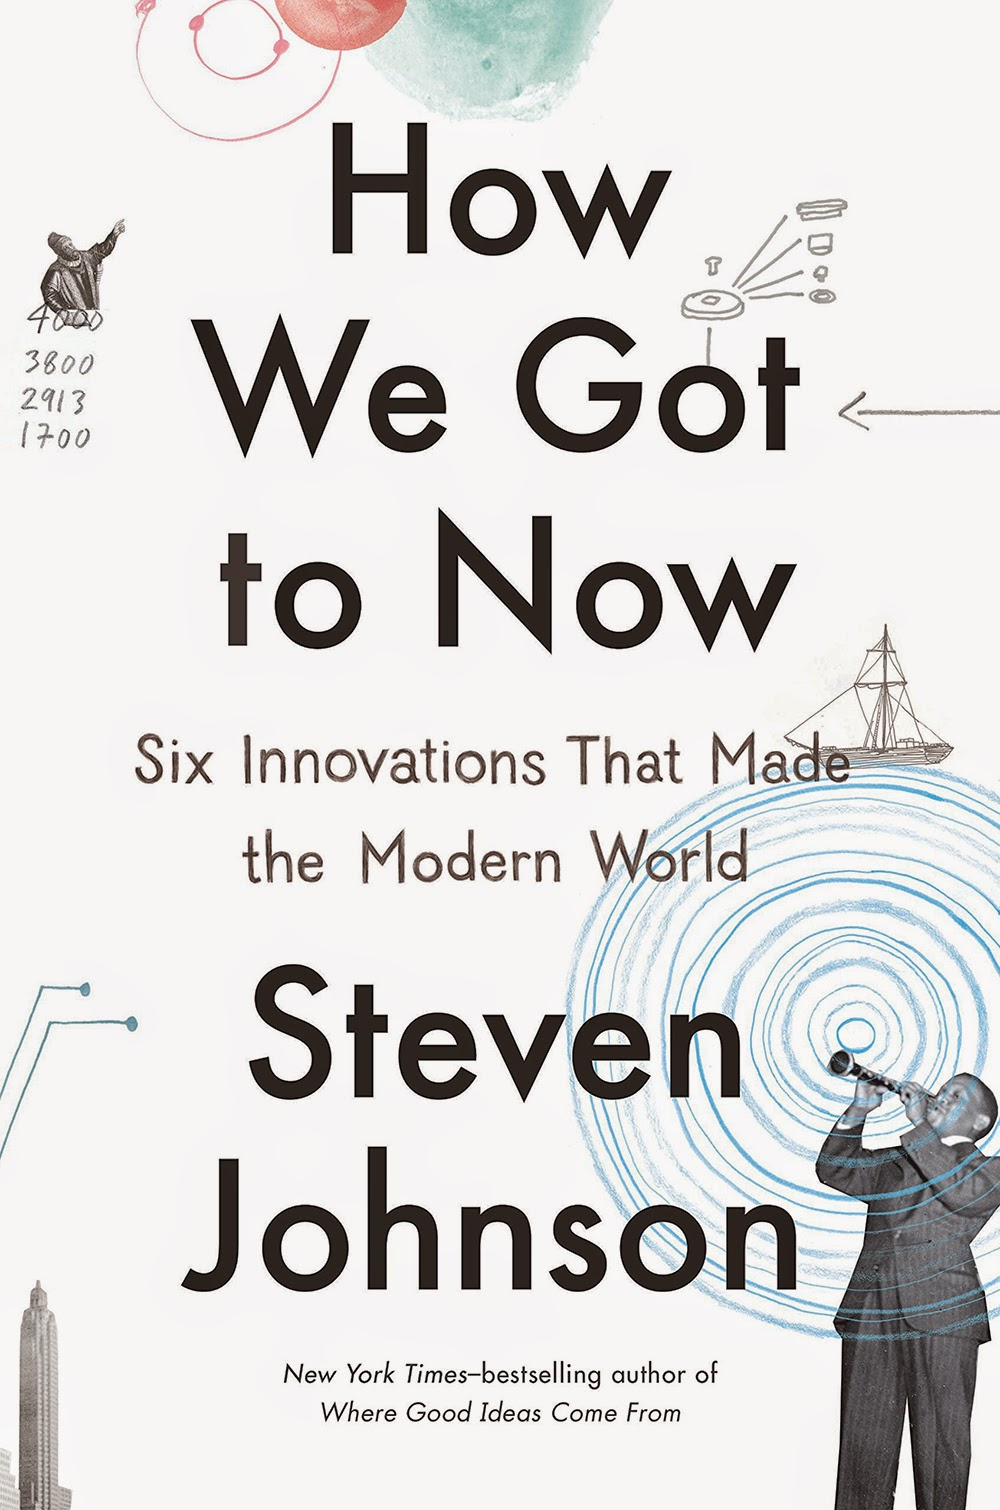 """how we got to now"" - Steven Johnson"